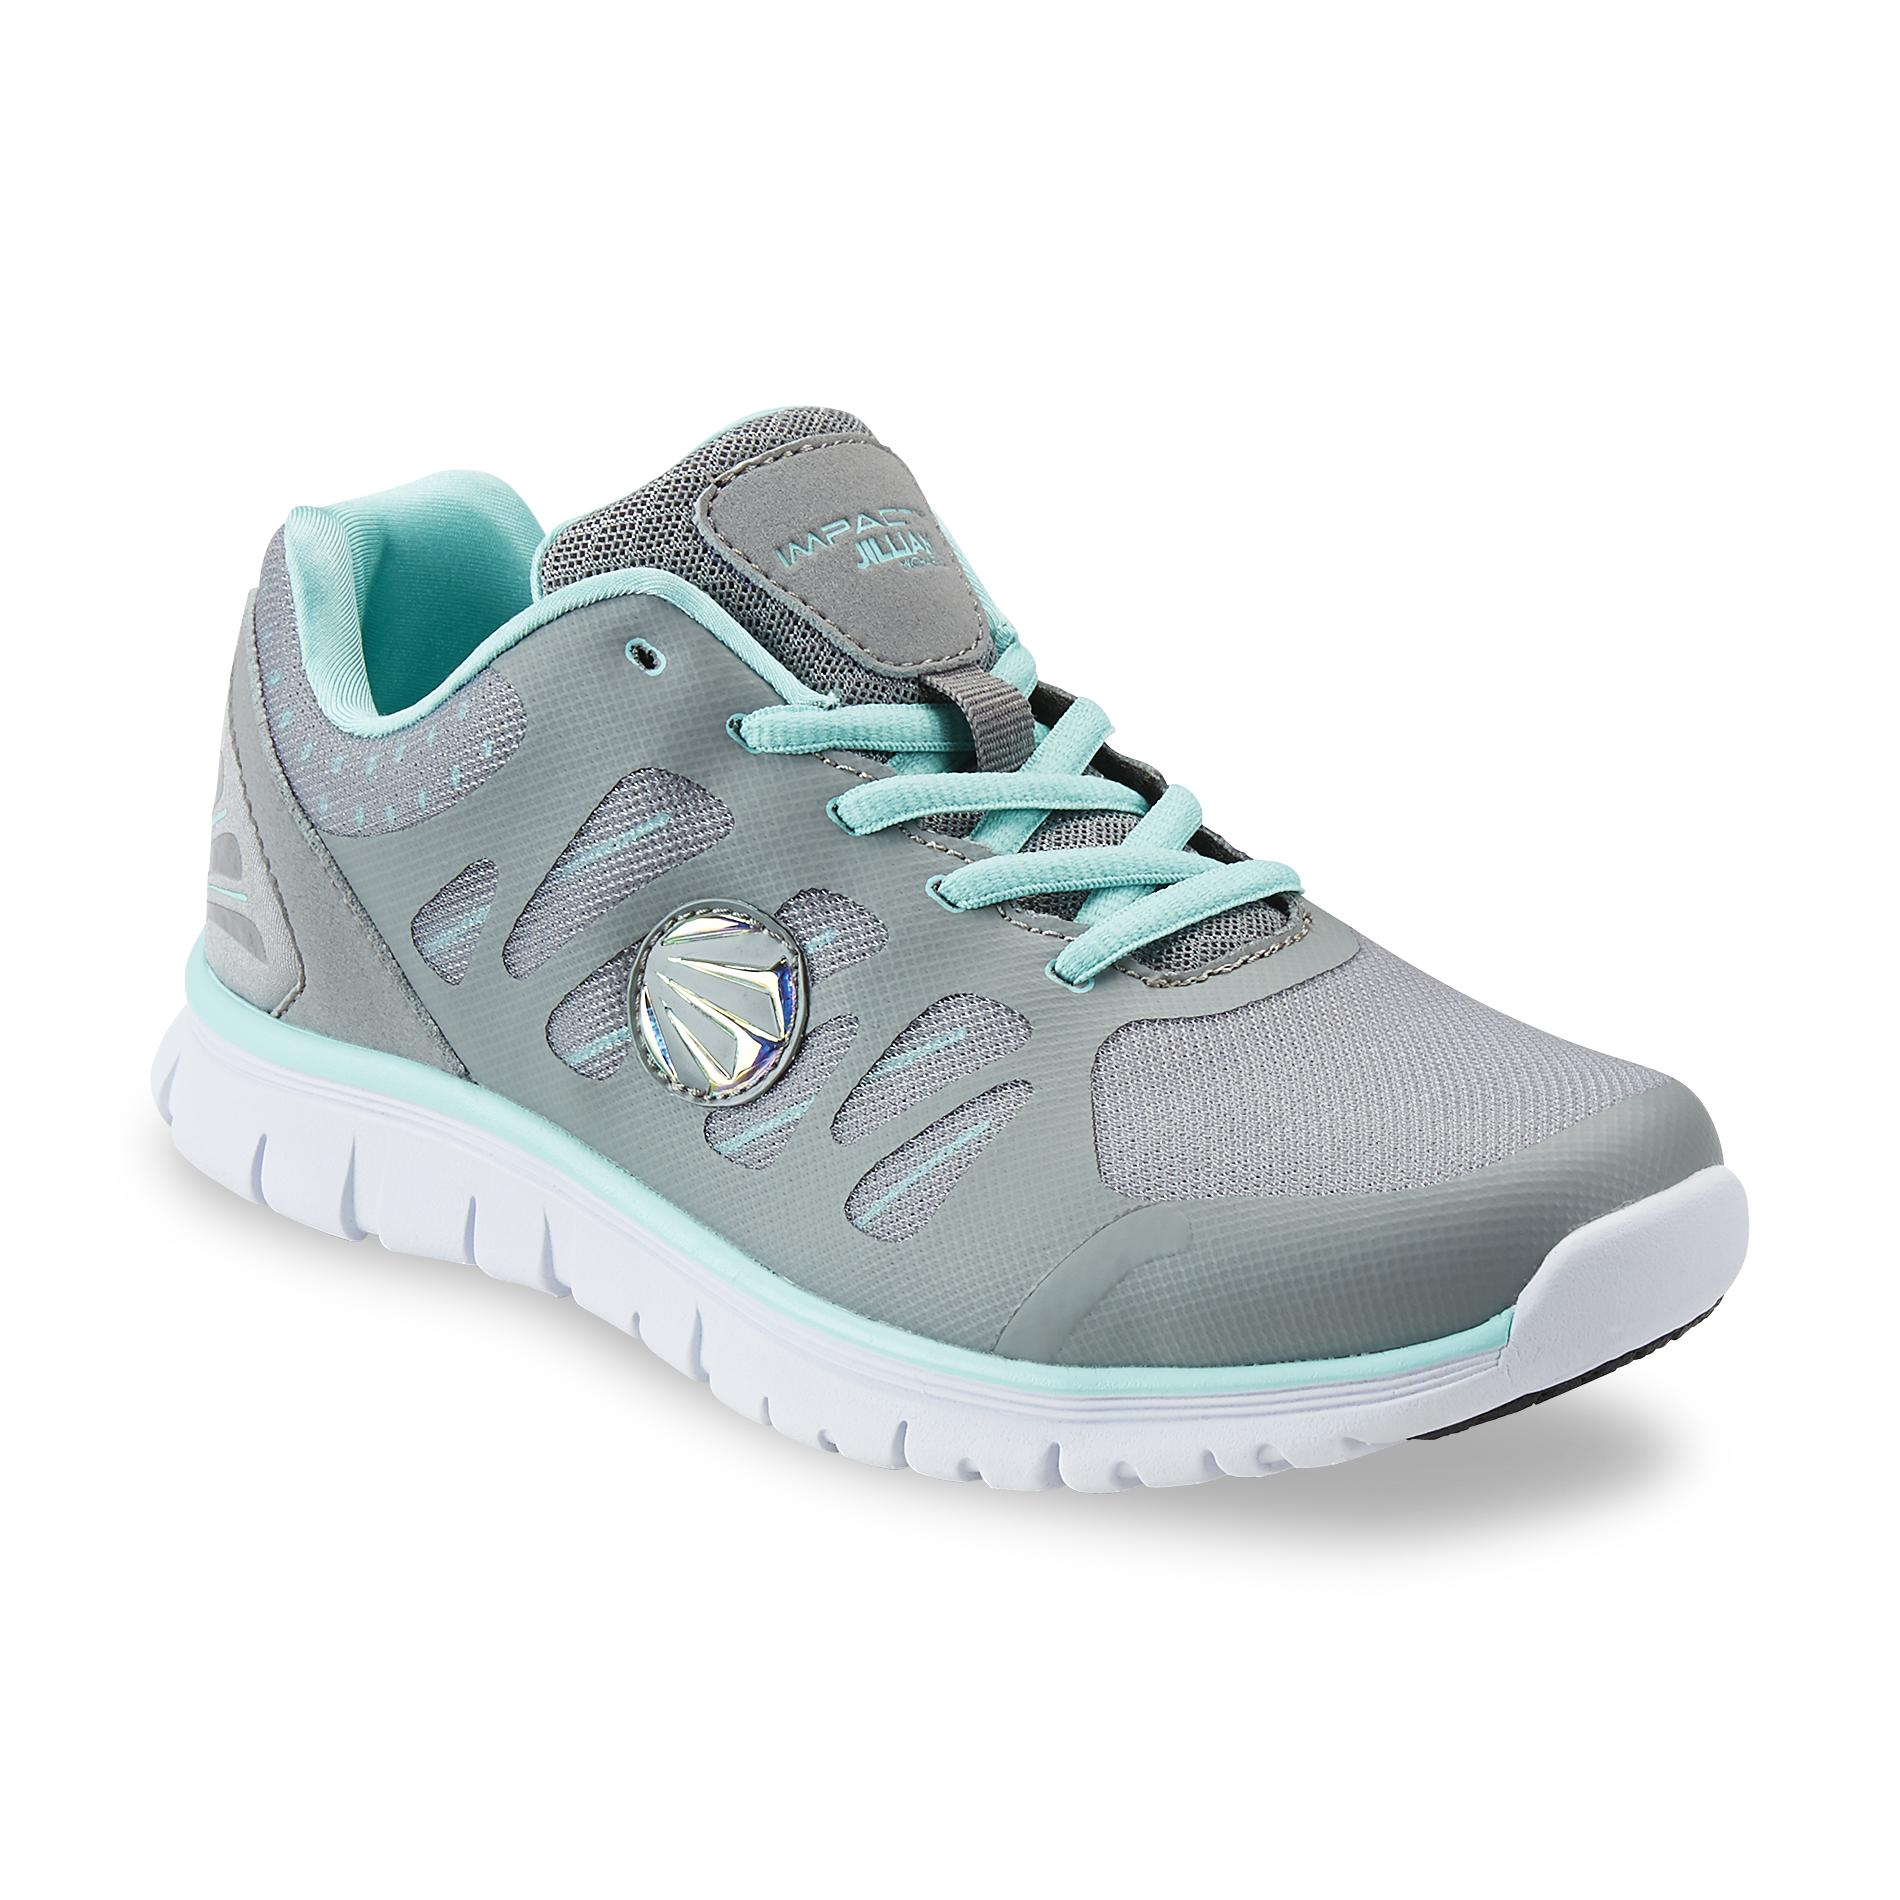 Womens Turquoise Shoes  Kmartcom